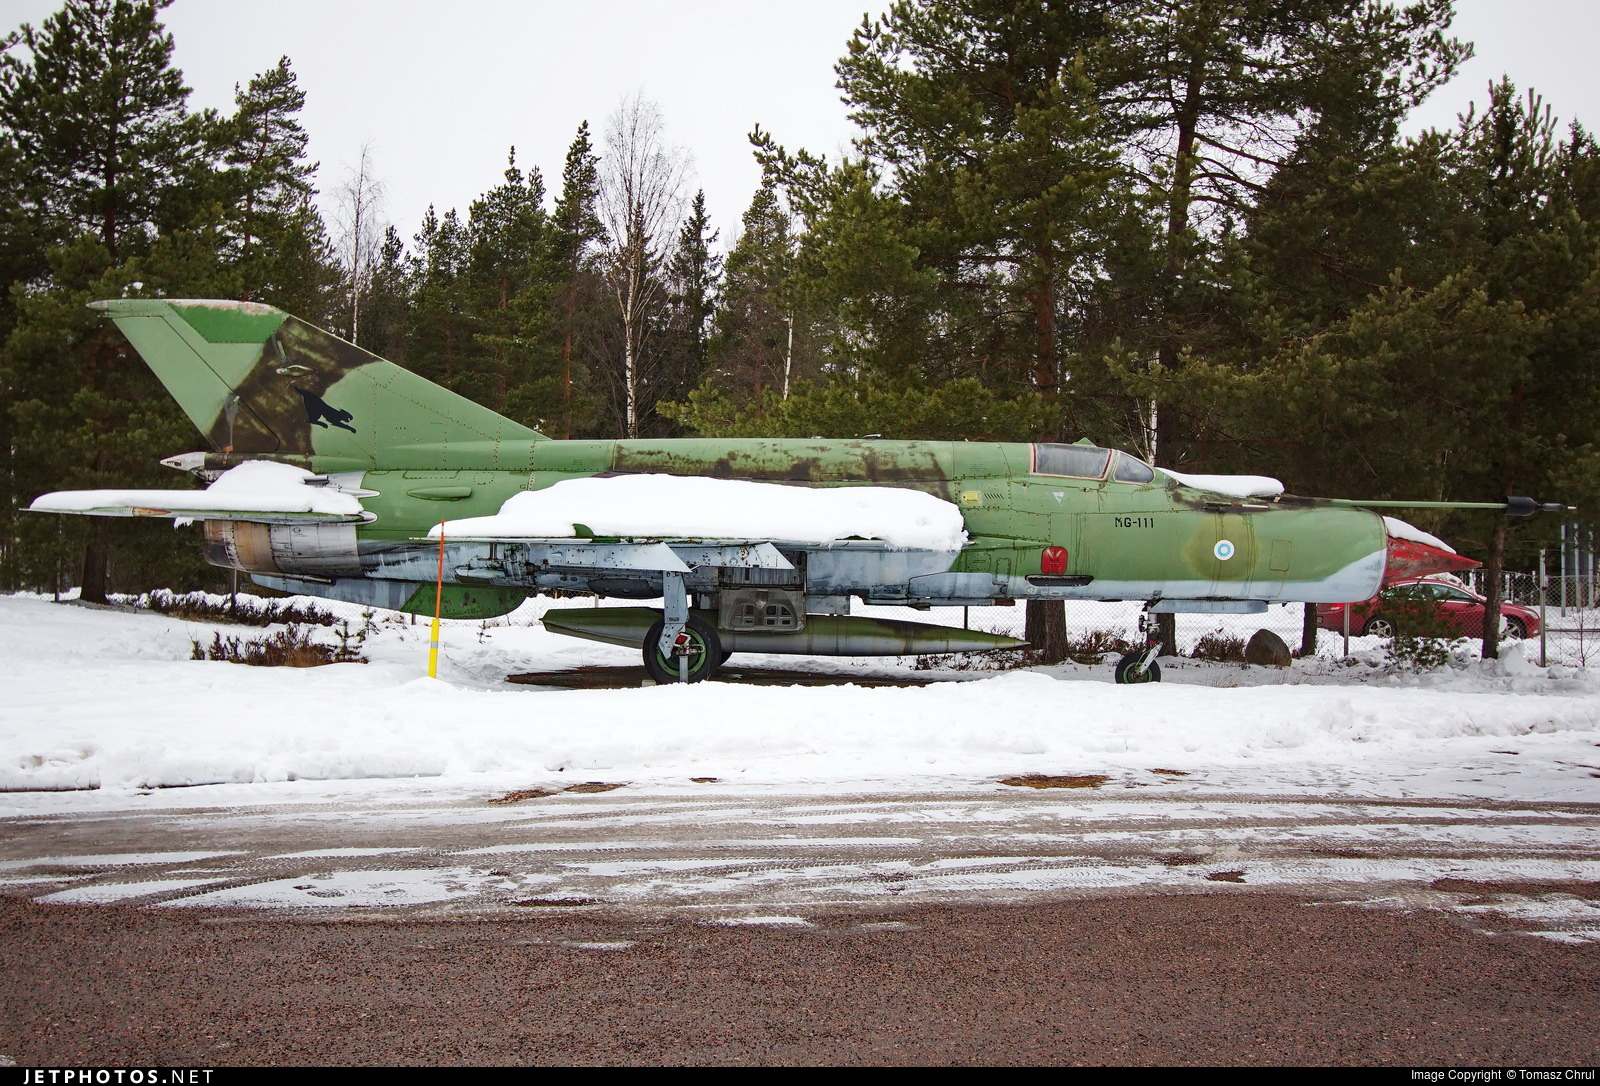 MG-111 - Mikoyan-Gurevich MiG-21bis Fishbed L - Finland - Air Force